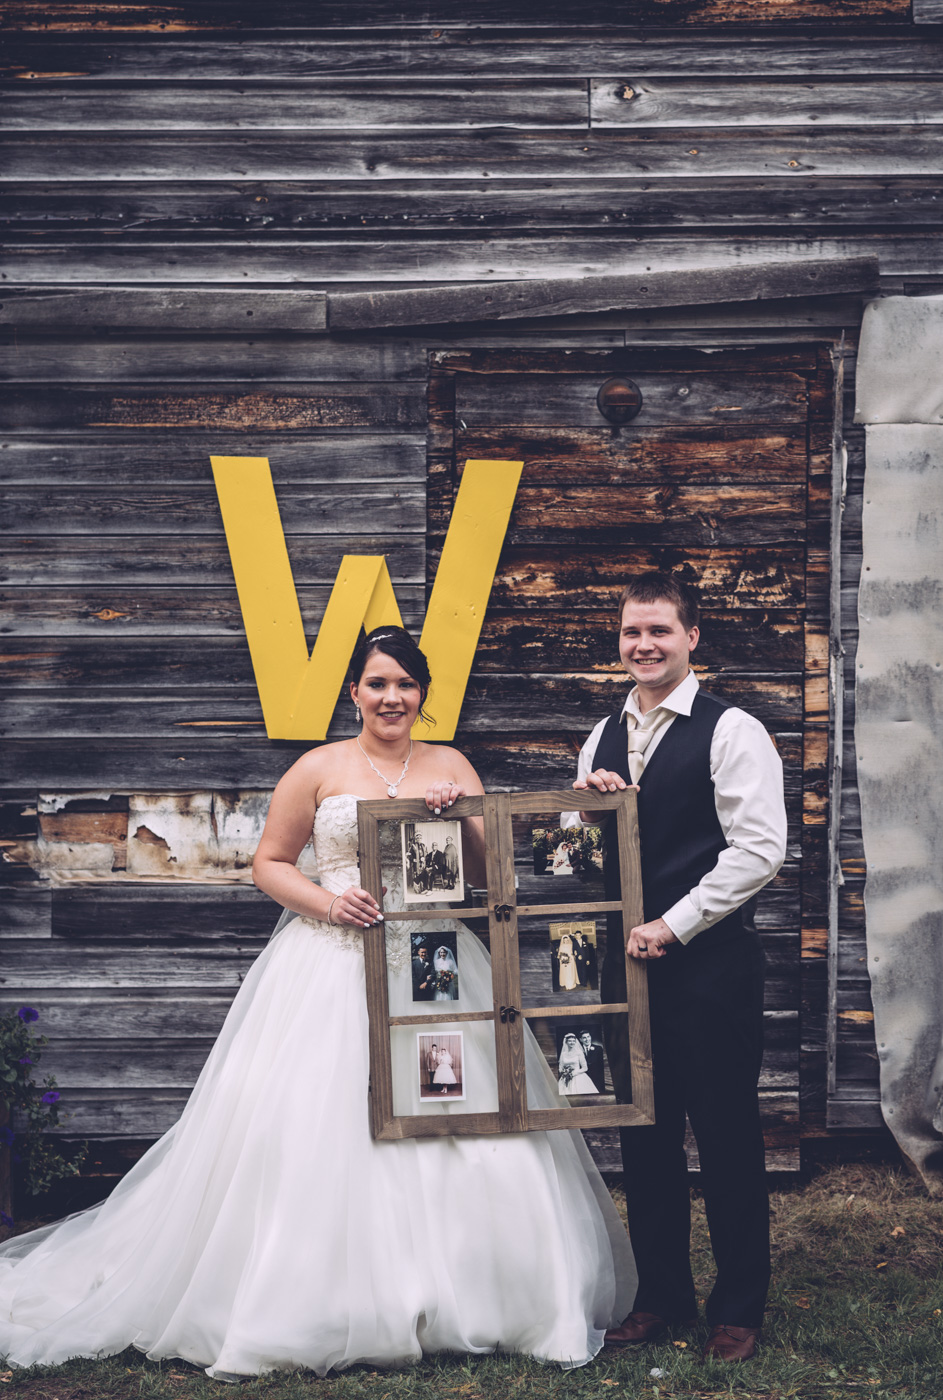 alexa_shawn_wedding_blog93.jpg